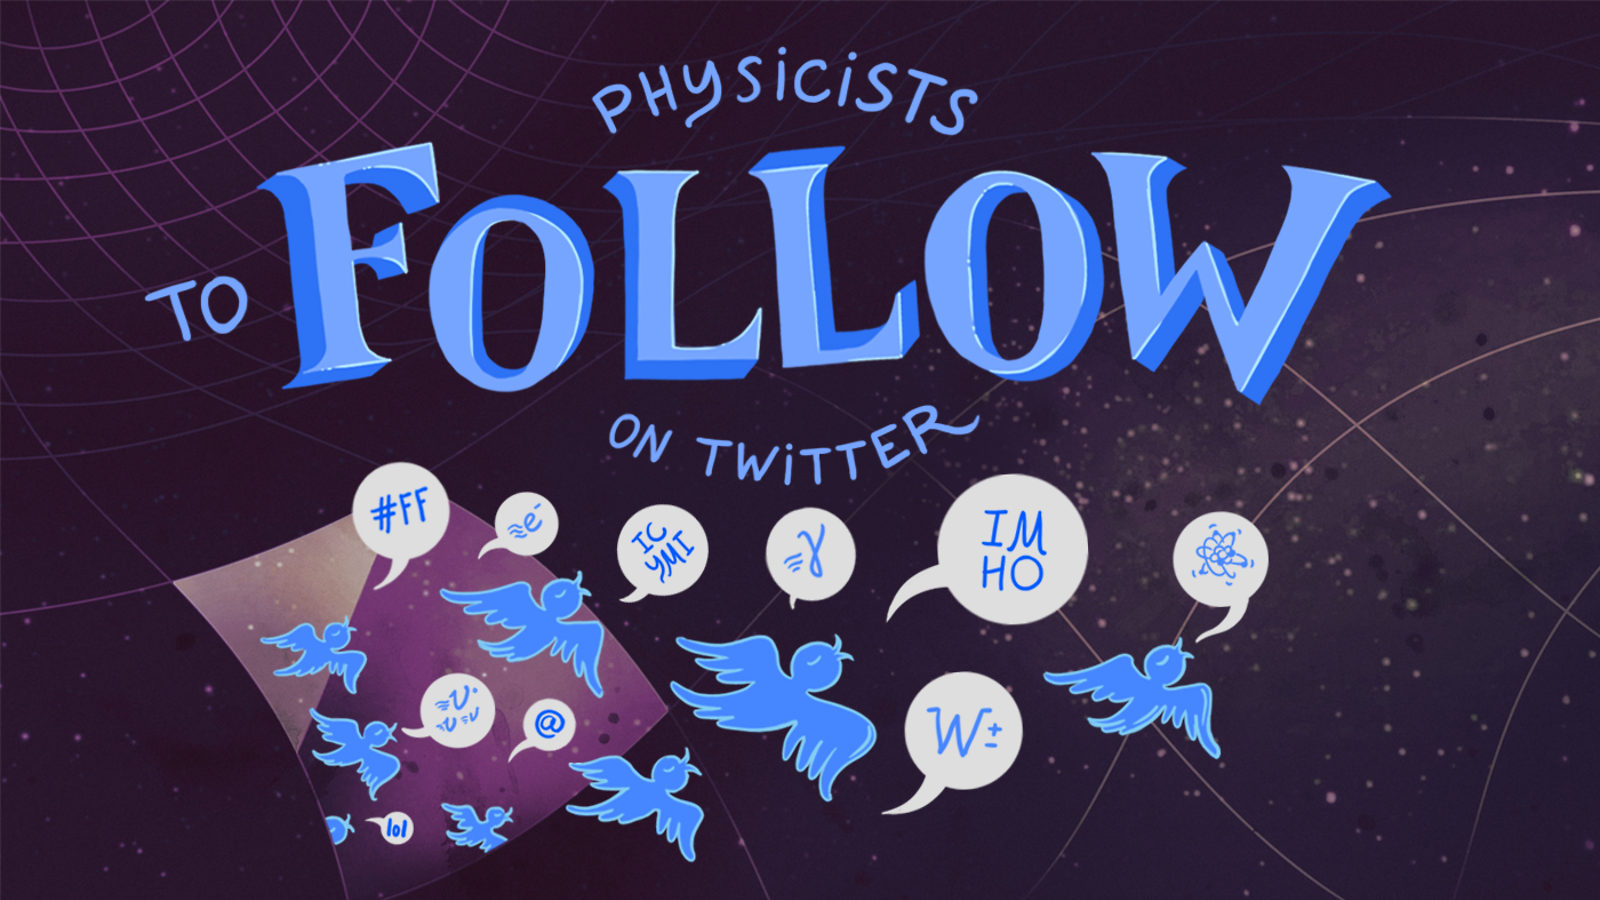 Image: Physicists on Twitter